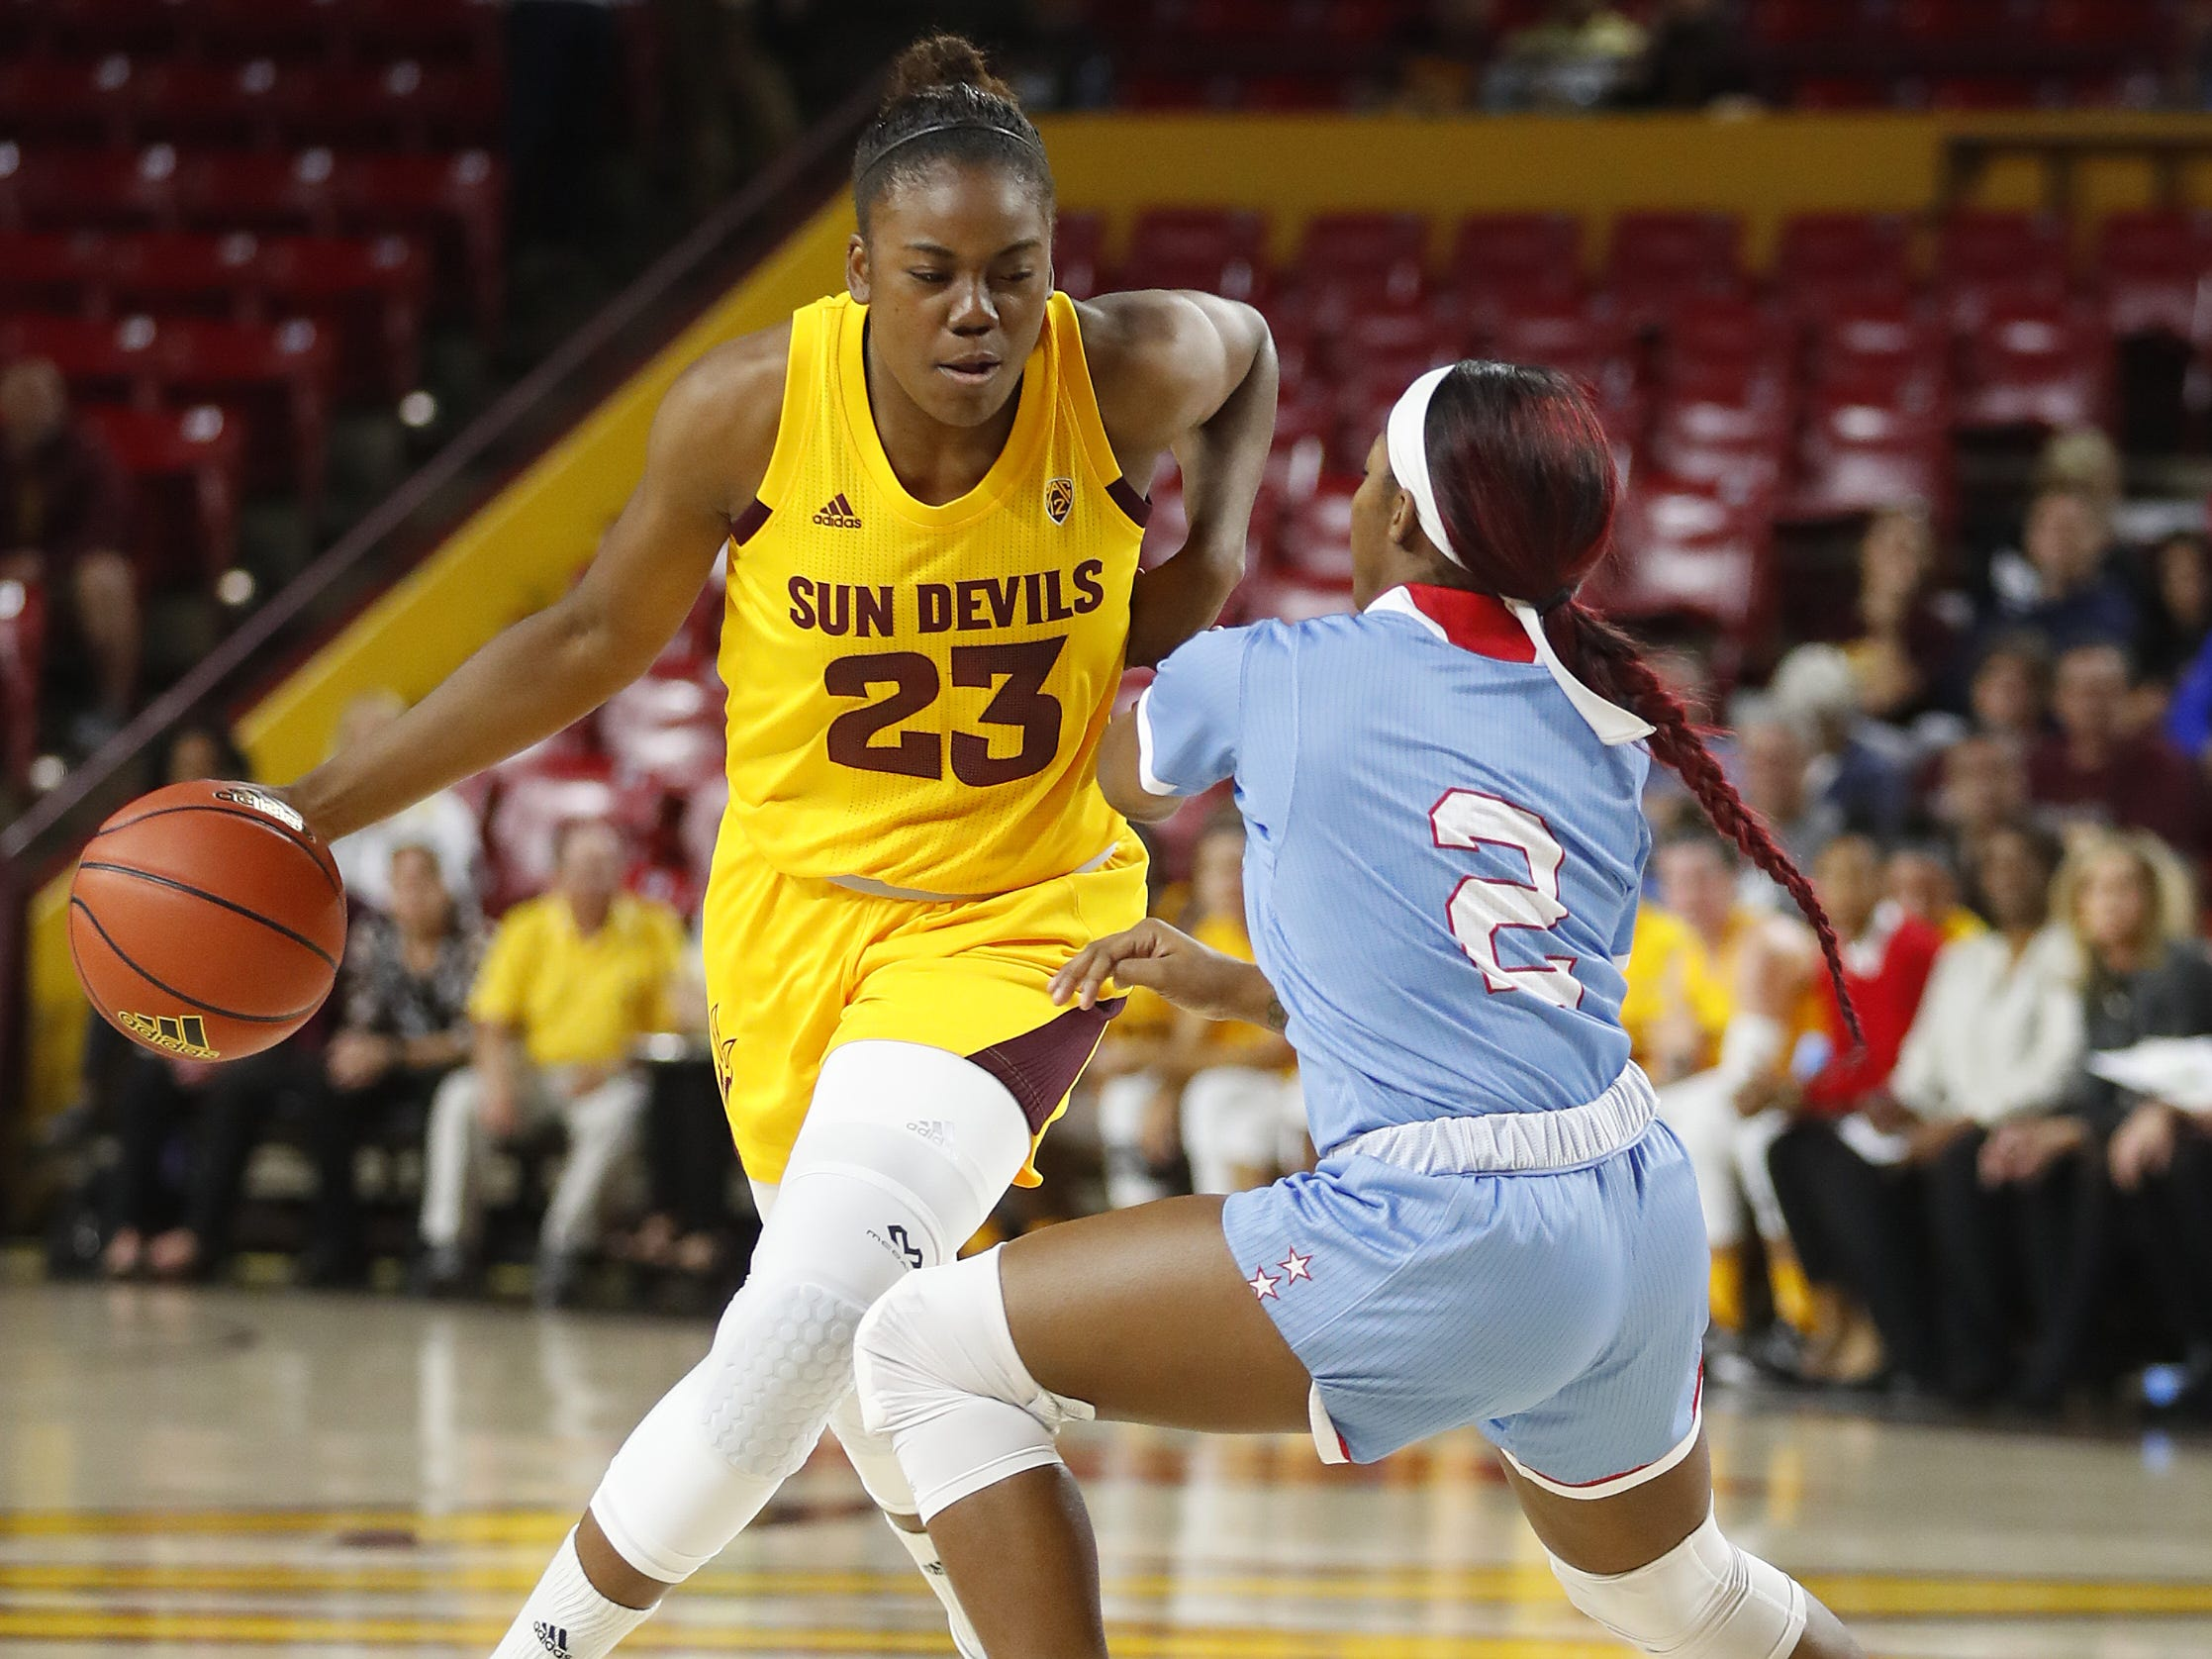 ASU's Iris Mbulito (23) drives the lane against Louisiana Tech's Keiunna Walker (2) during the first half at Wells Fargo Arena in Tempe, Ariz. on November 30, 2018.